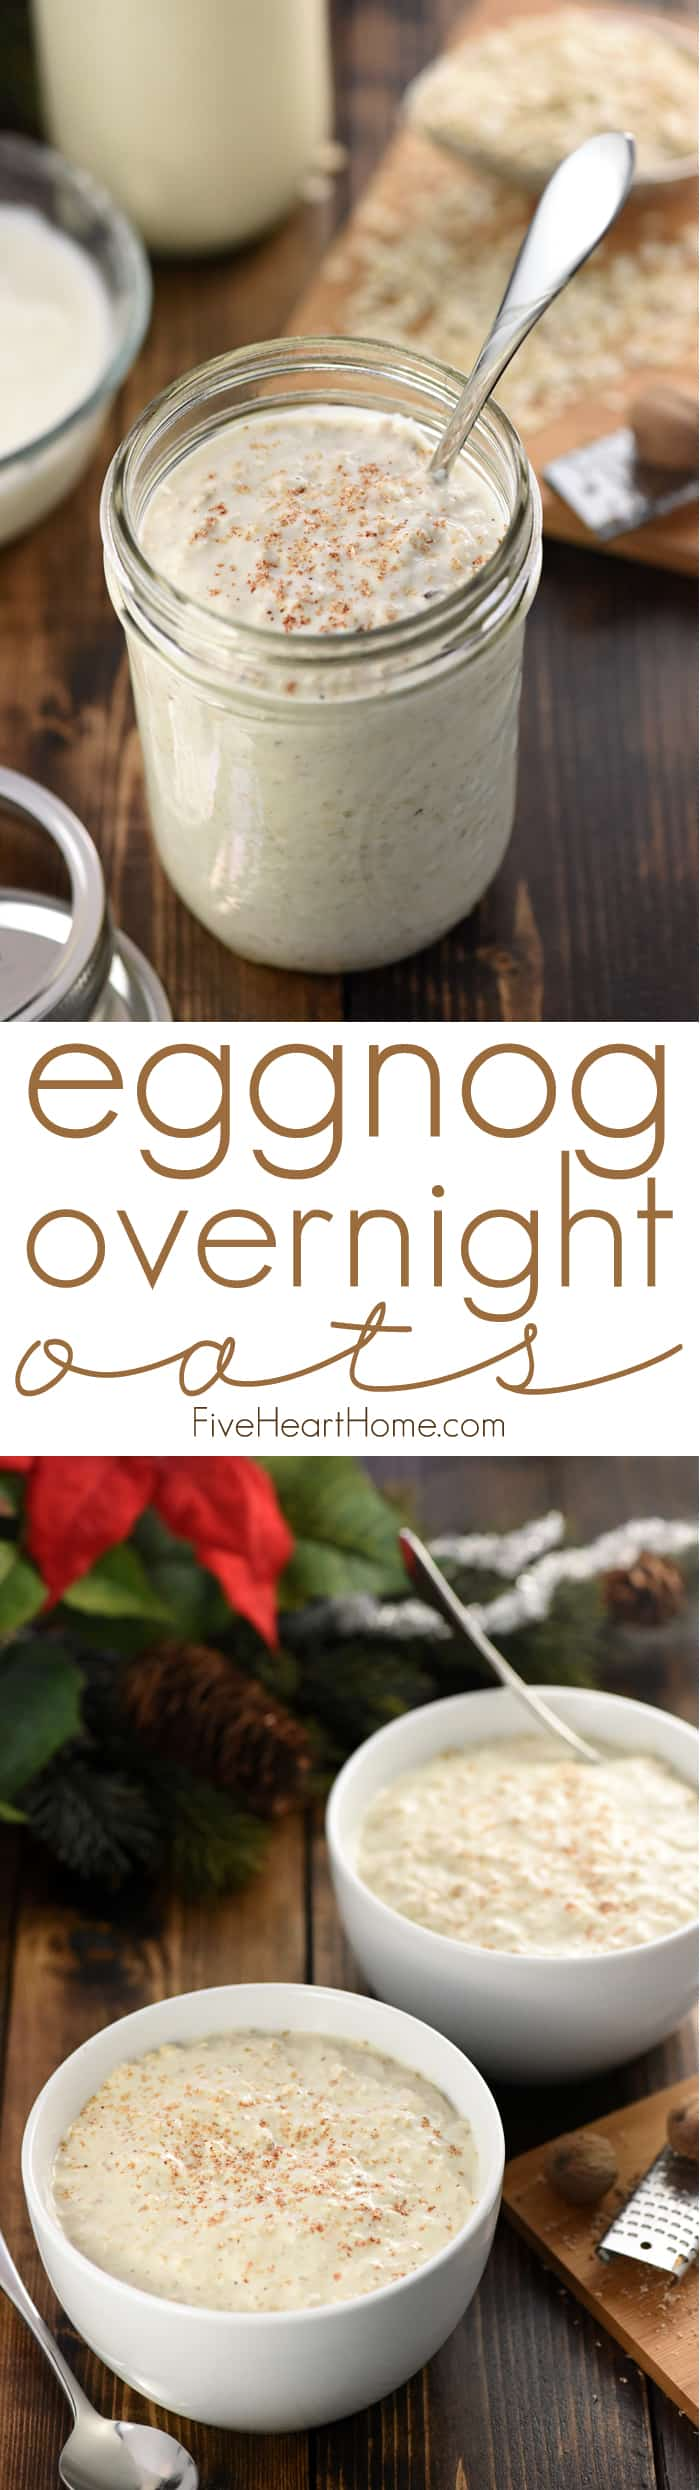 Eggnog Overnight Oats Collage with Text Overlay